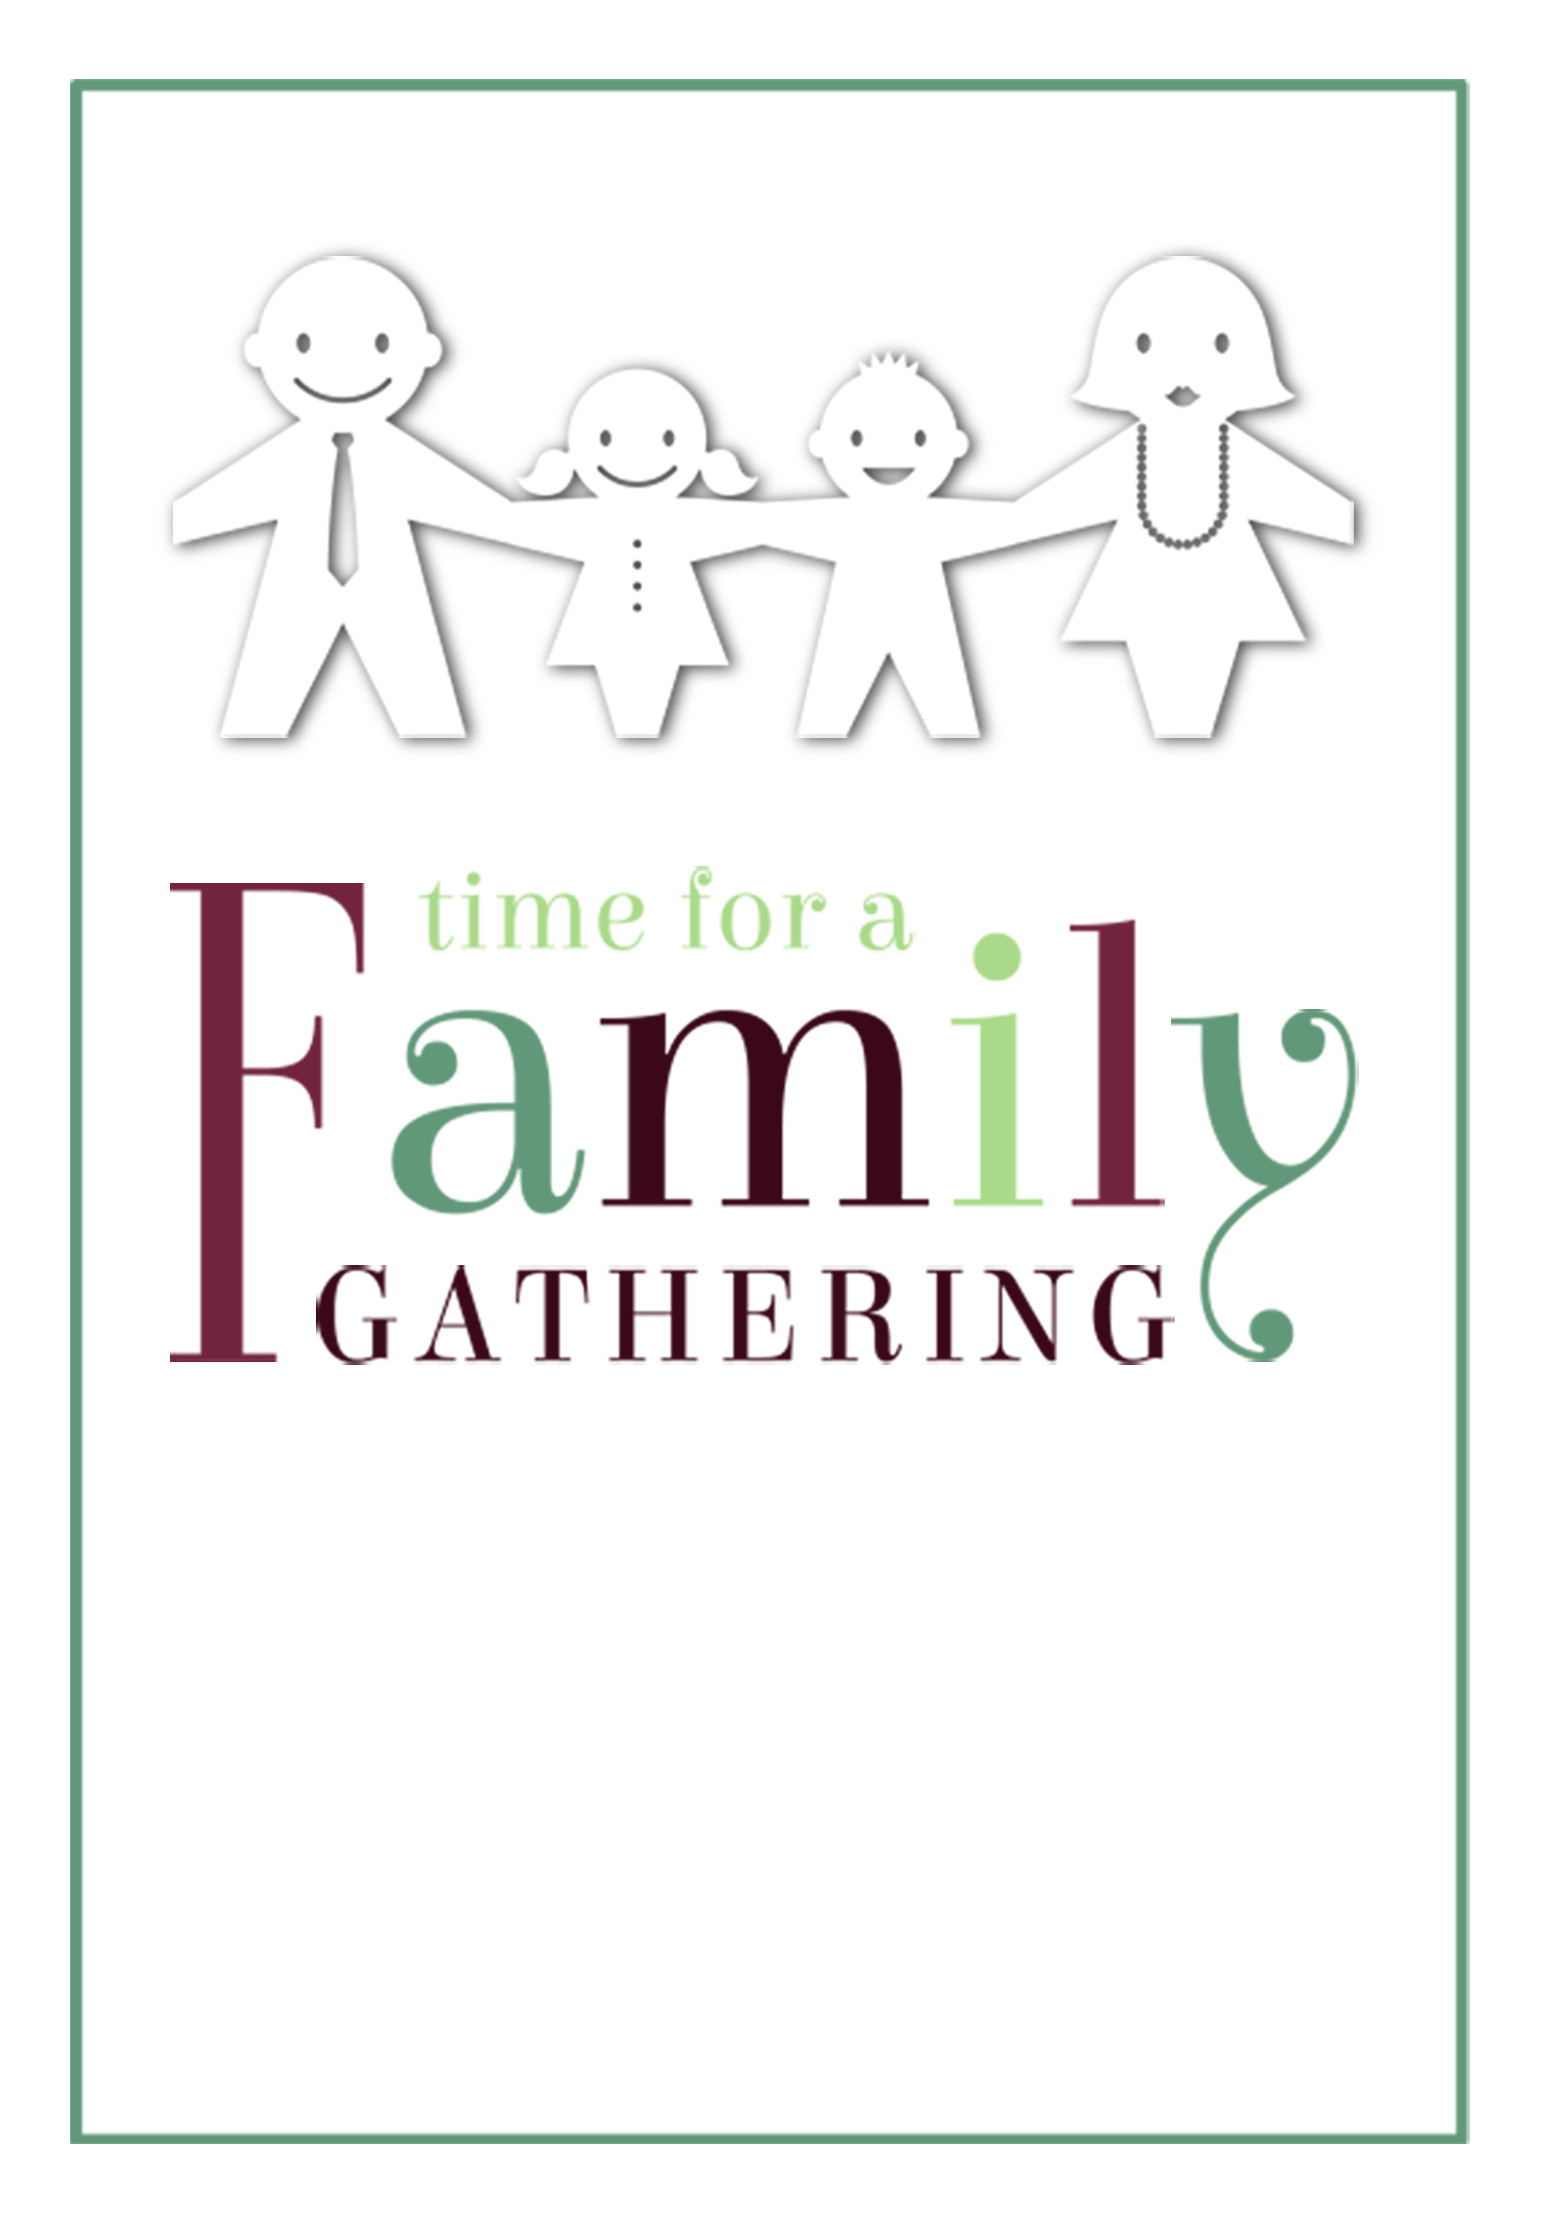 Free Family Reunion Templates Time for A Family Gathering Free Printable Family